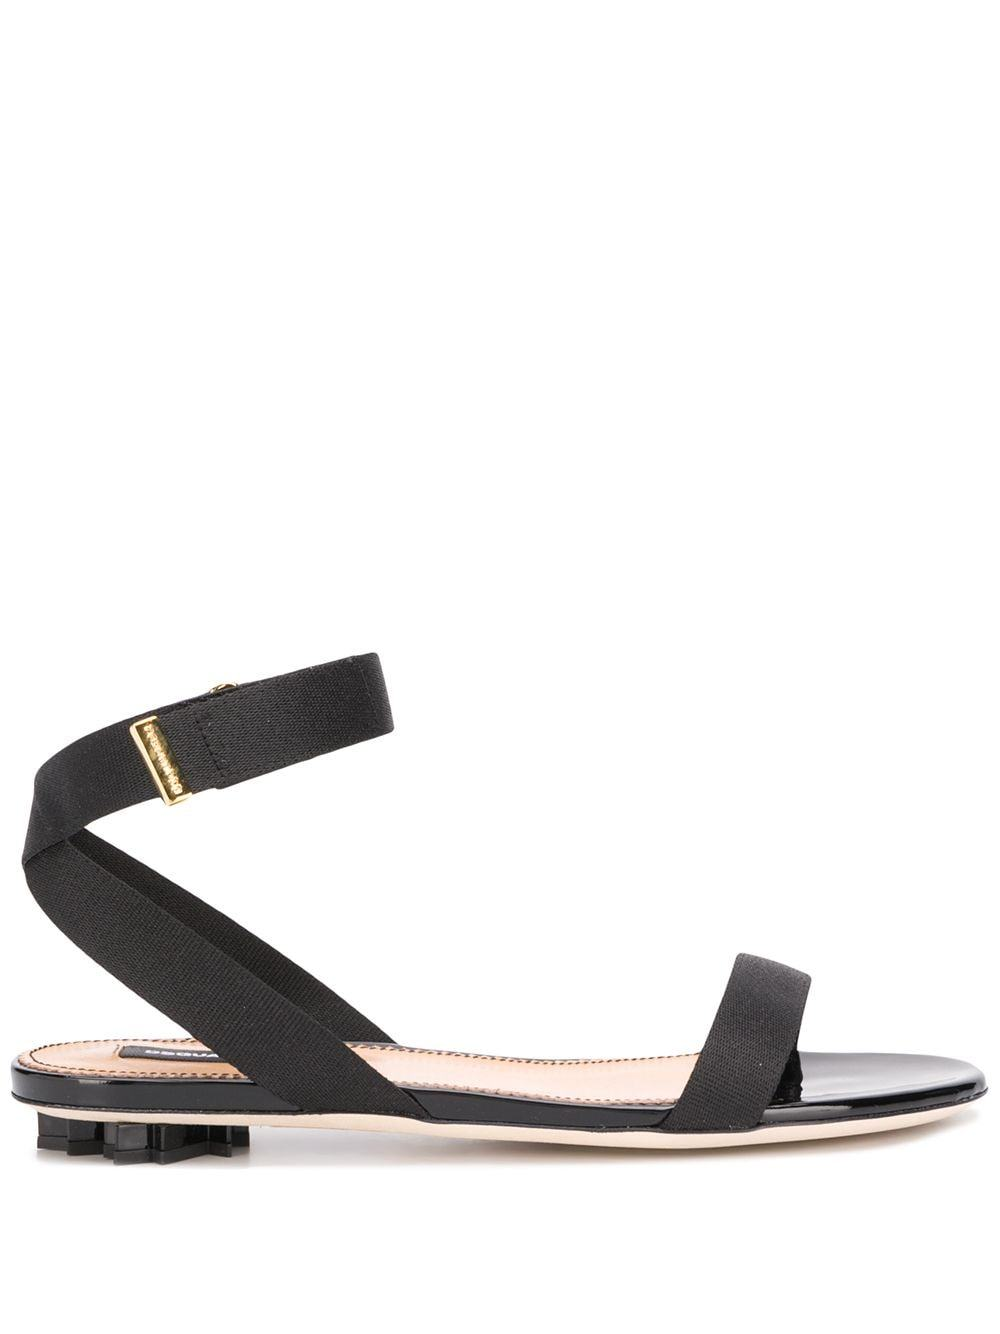 DSQUARED2 women leaf low sandal black - Maison De Fashion